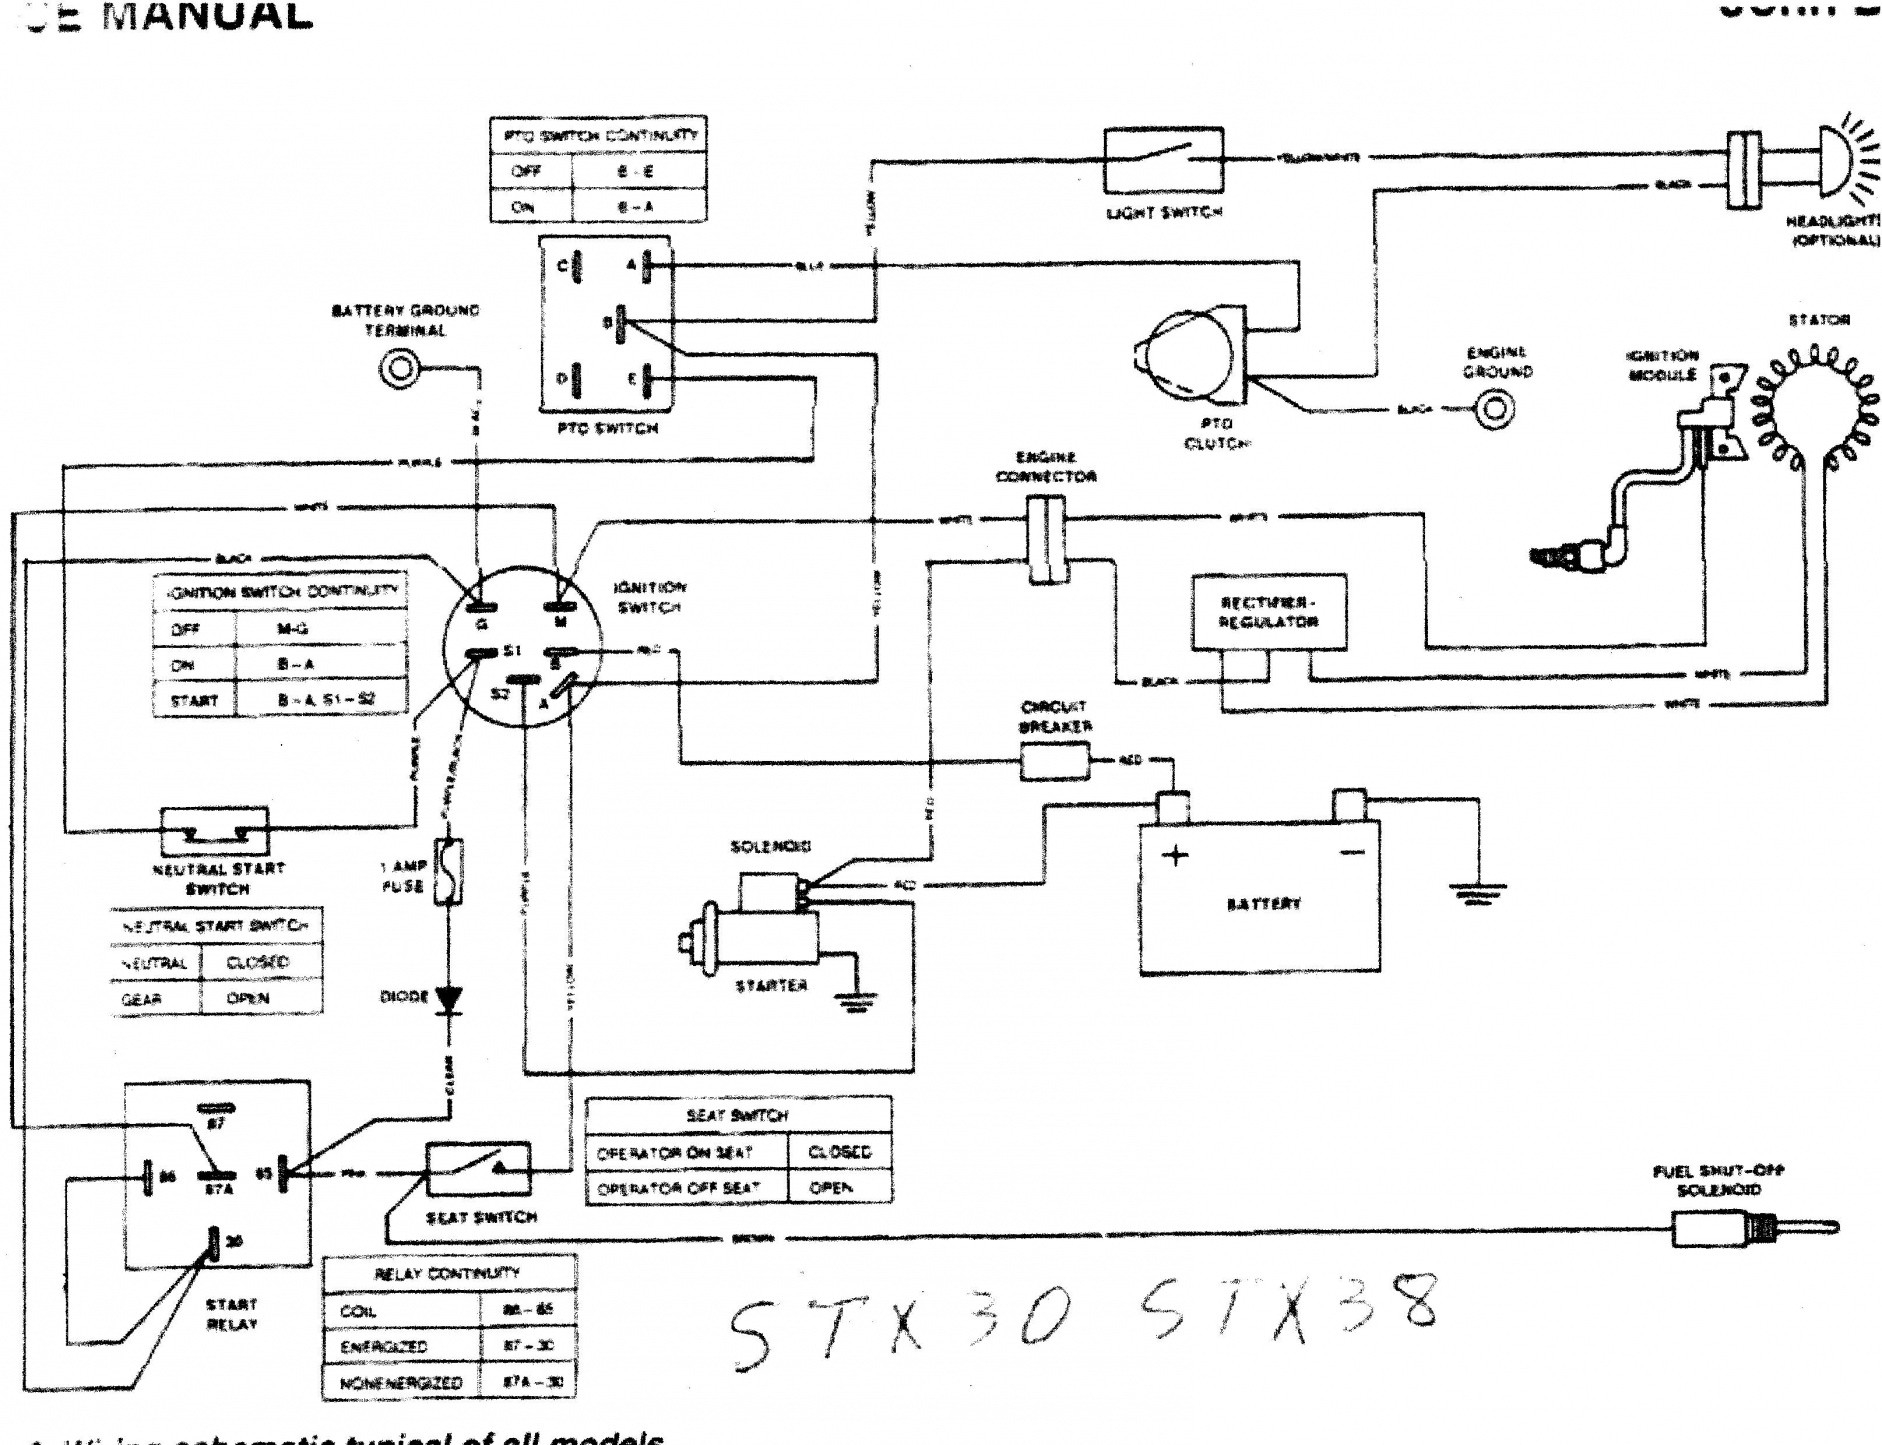 John Deere Wiring Diagrams - Wiring Diagram Library